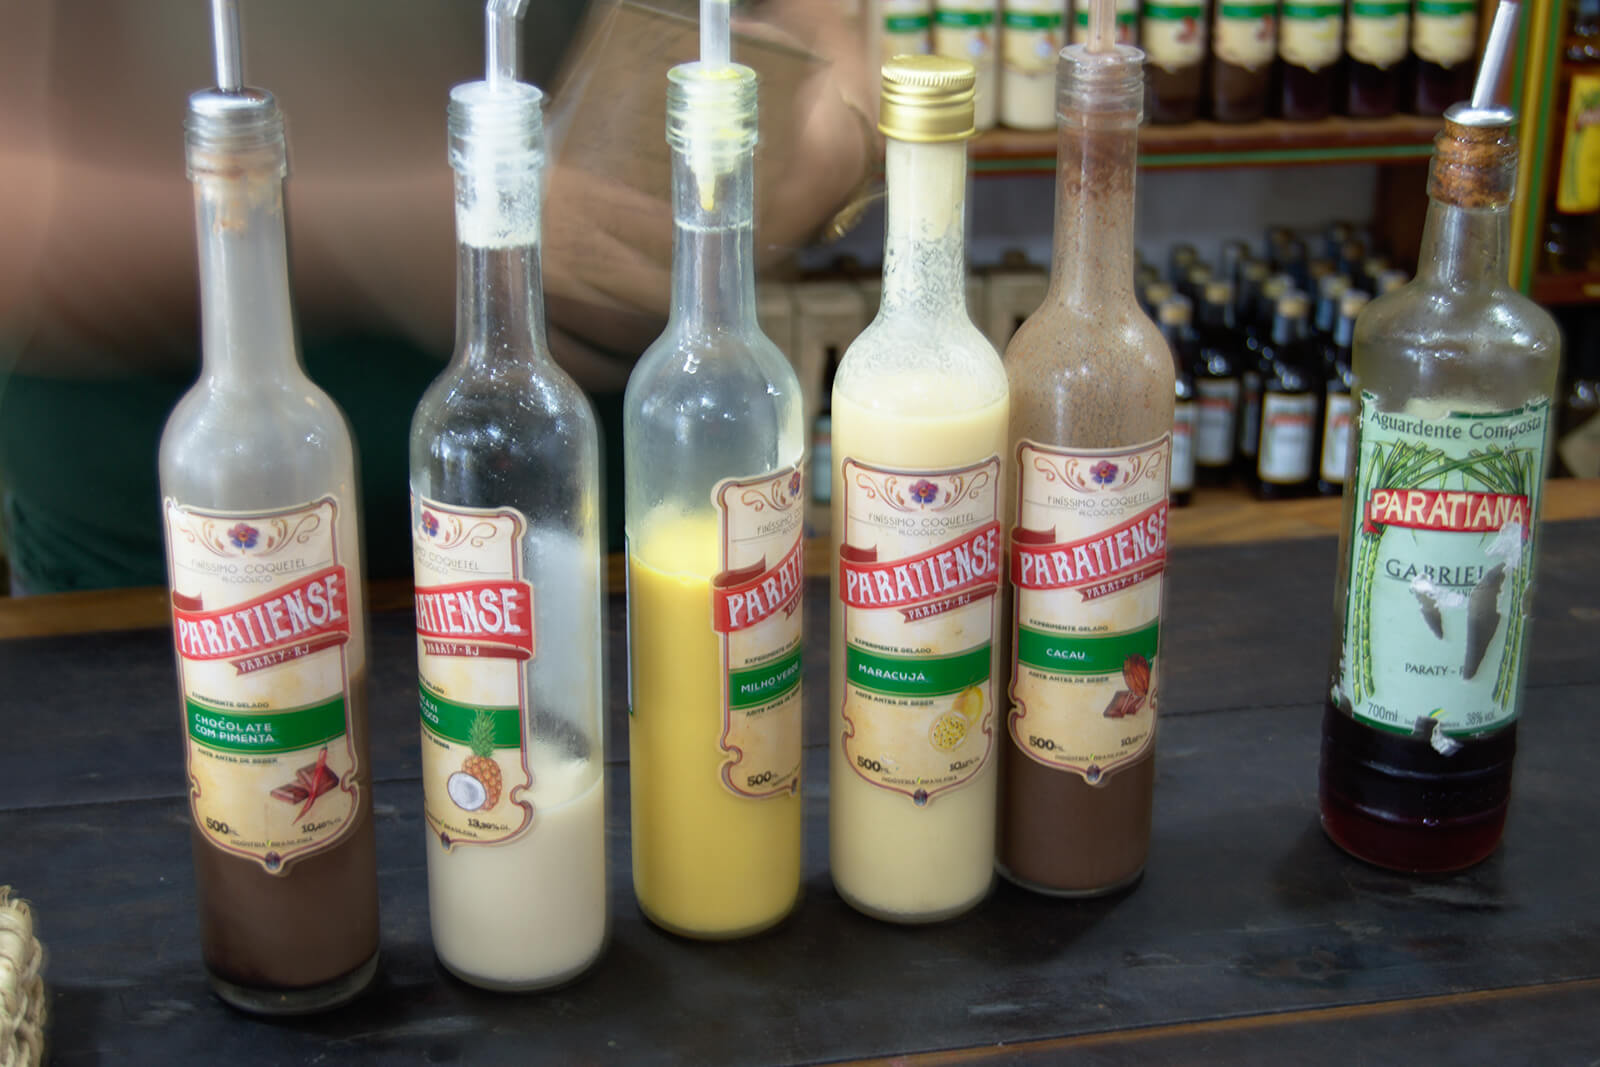 Cachaca in Brazil, one of the unique traditional alcoholic beverages to try while traveling